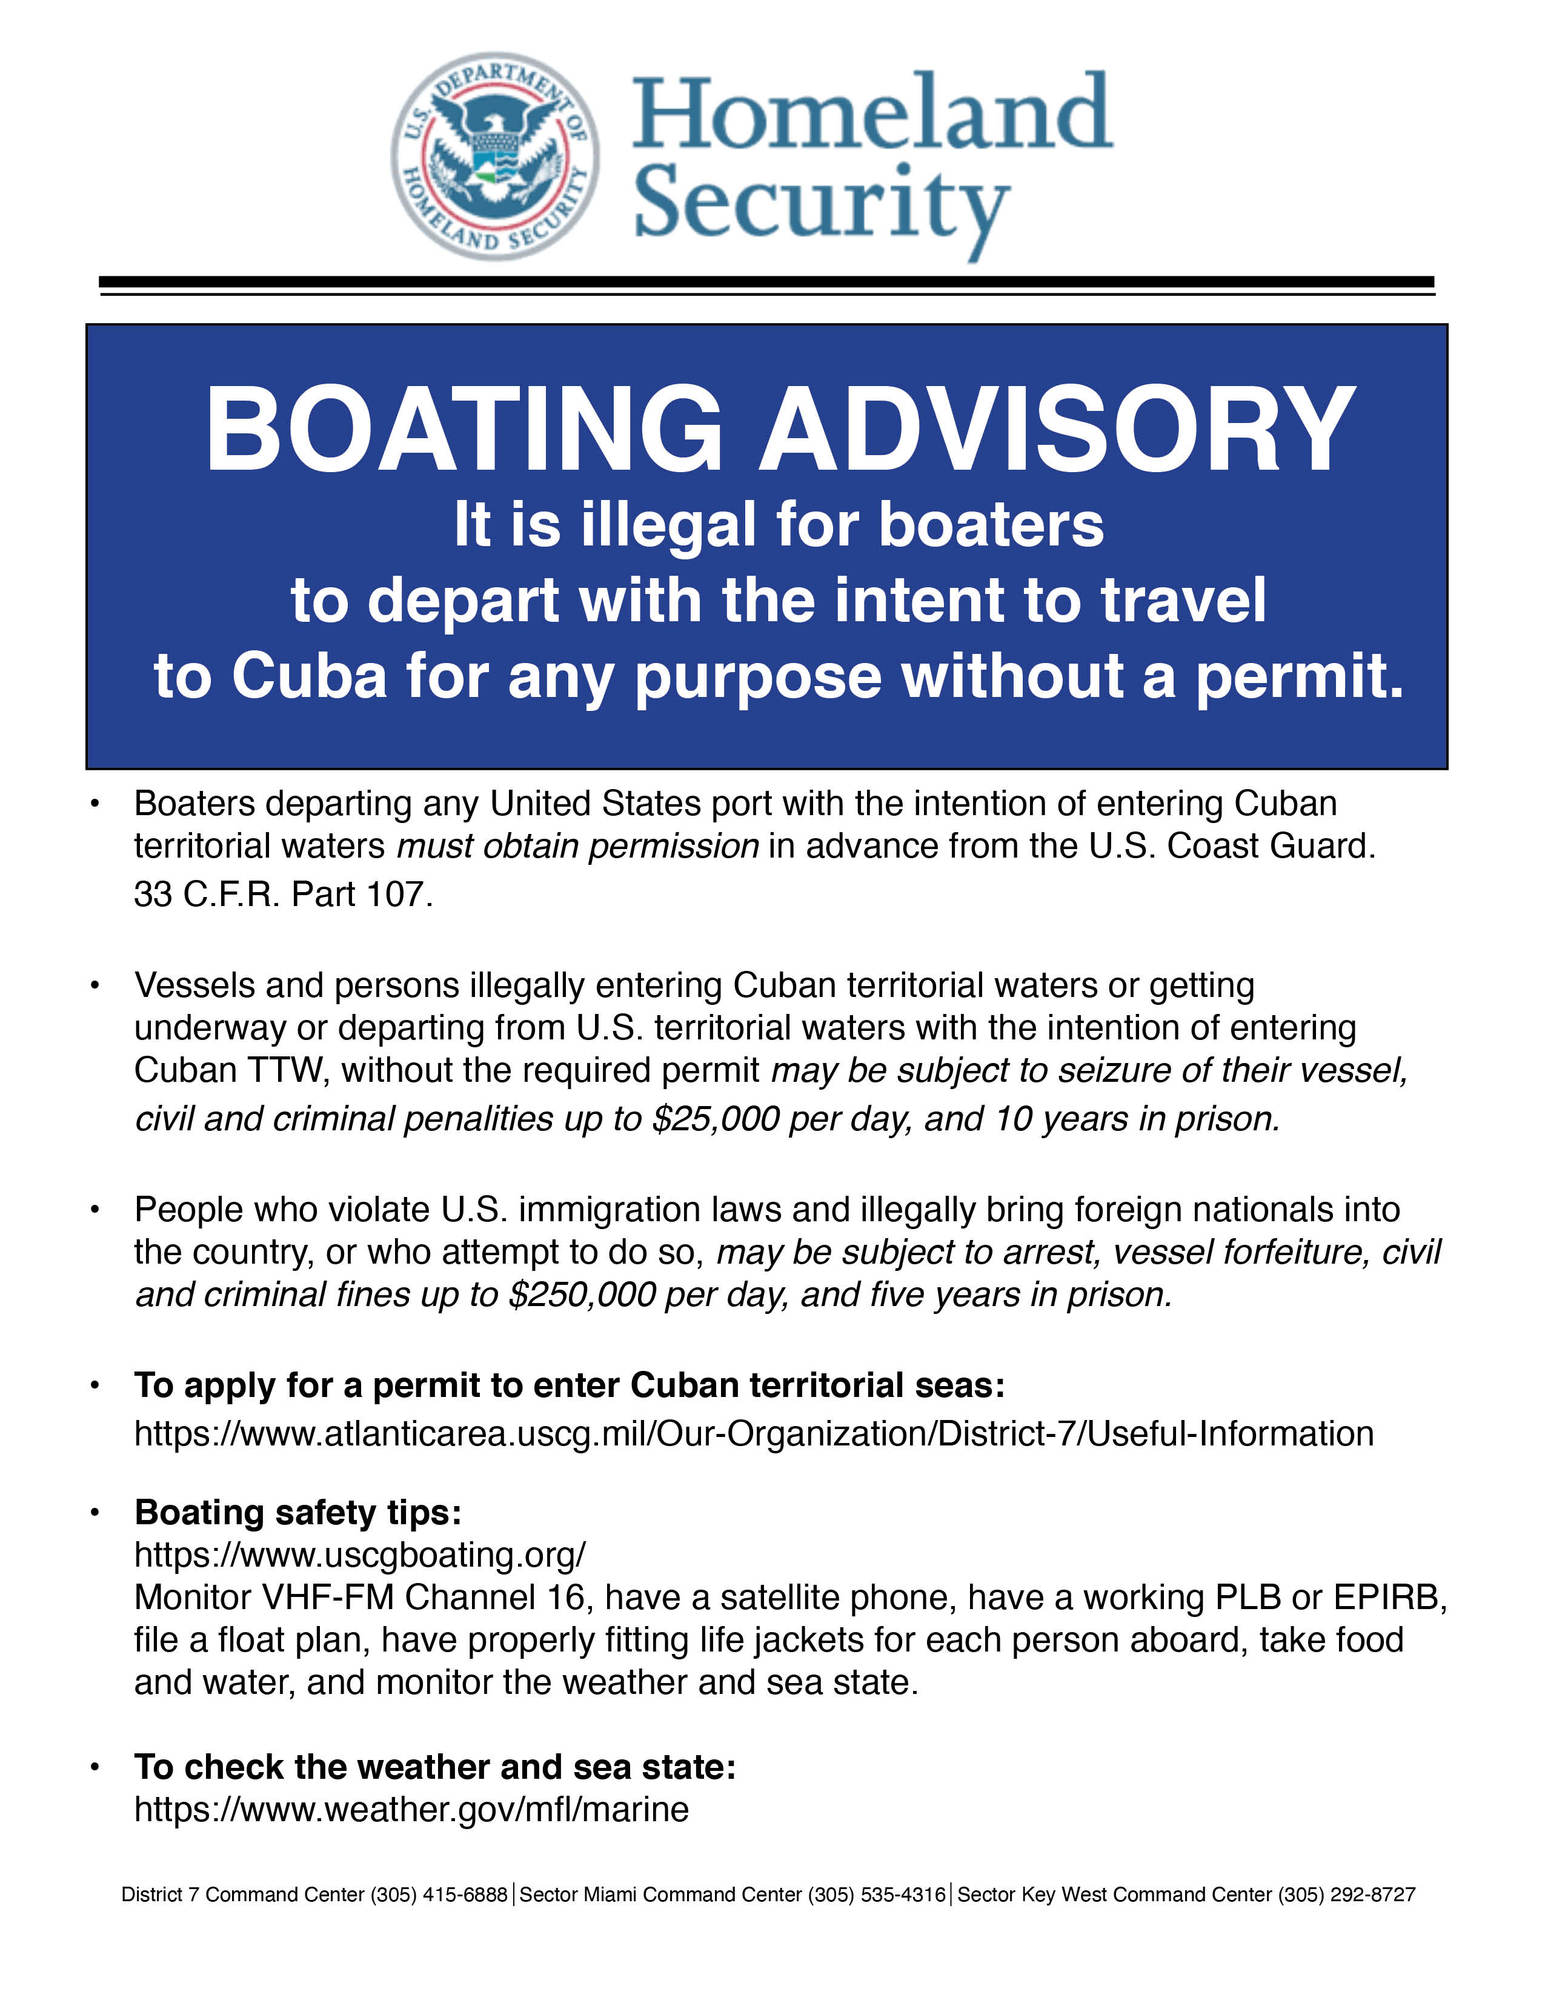 Boating Advisory for Cuban waters